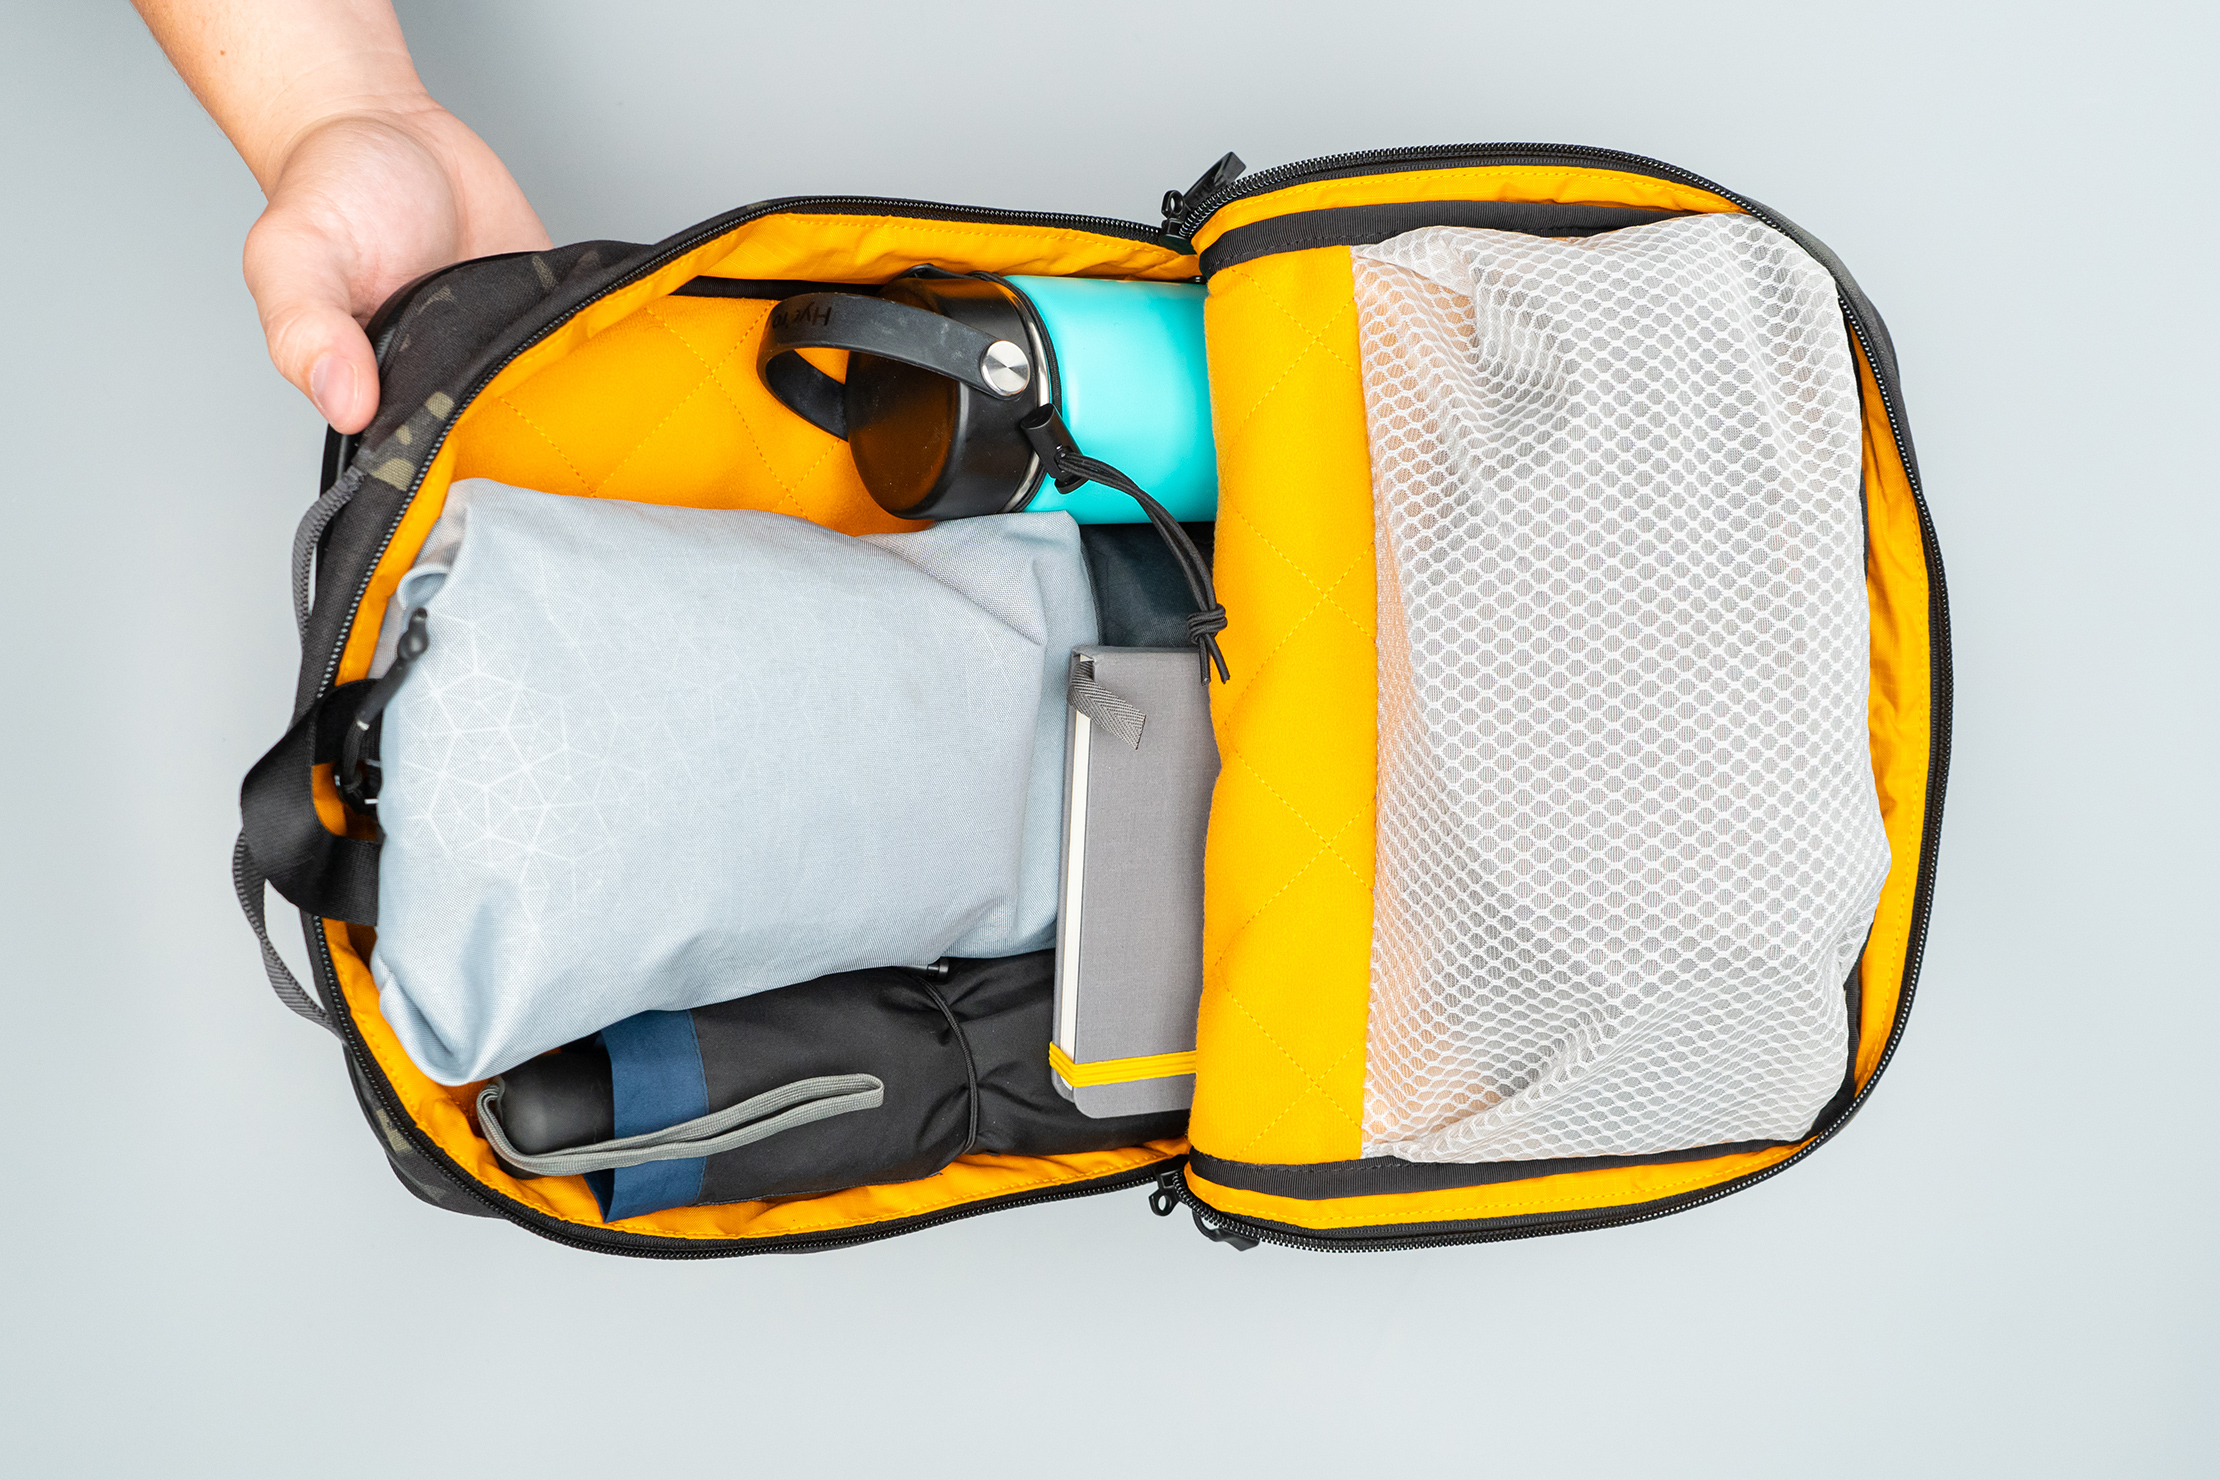 Vanquest ADDAX-18 Backpack main compartment